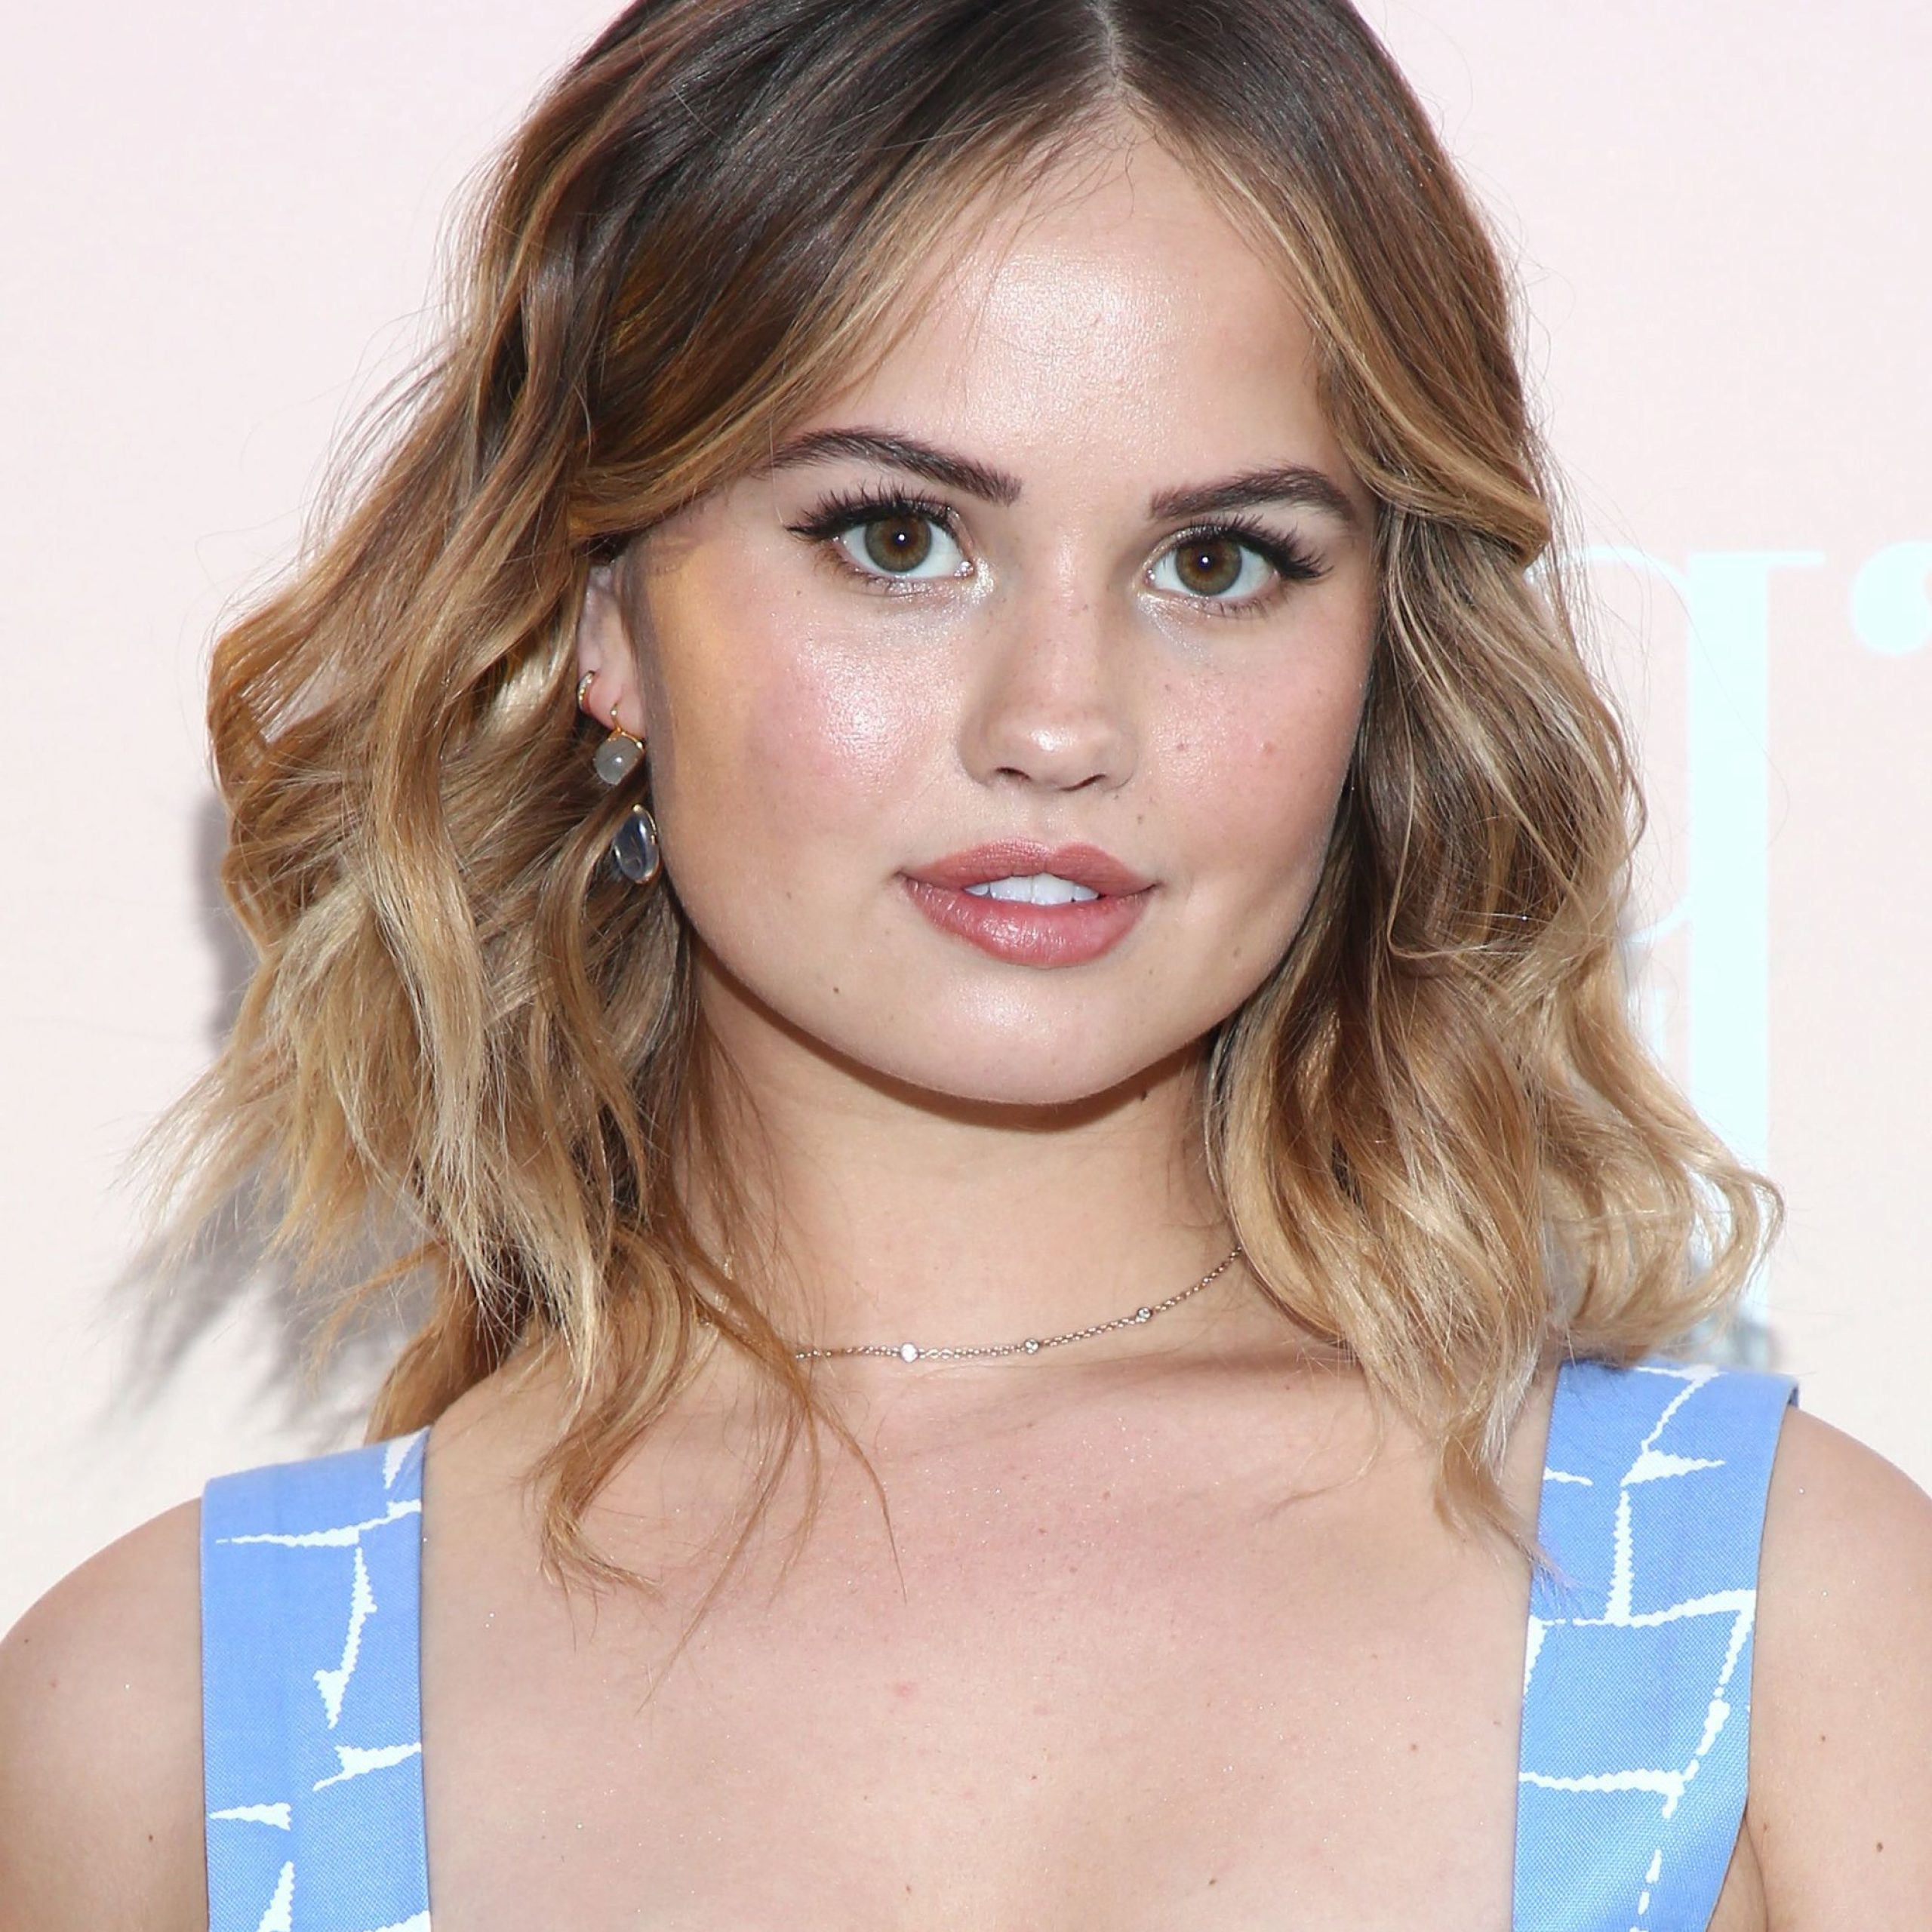 Hairstyles For A Round Face: 20 Sublime Styles That Will Regarding Short Flip Haircuts For A Round Face (View 12 of 20)